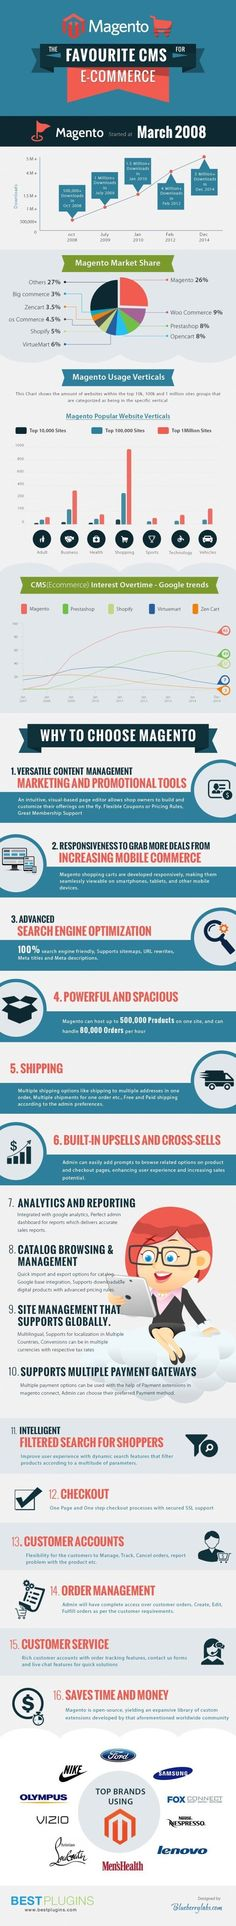 Why Magento Continues to Lead the Ecommerce CMS Industry   https://www.marketingtechblog.com/magento-ecommerce-cms/